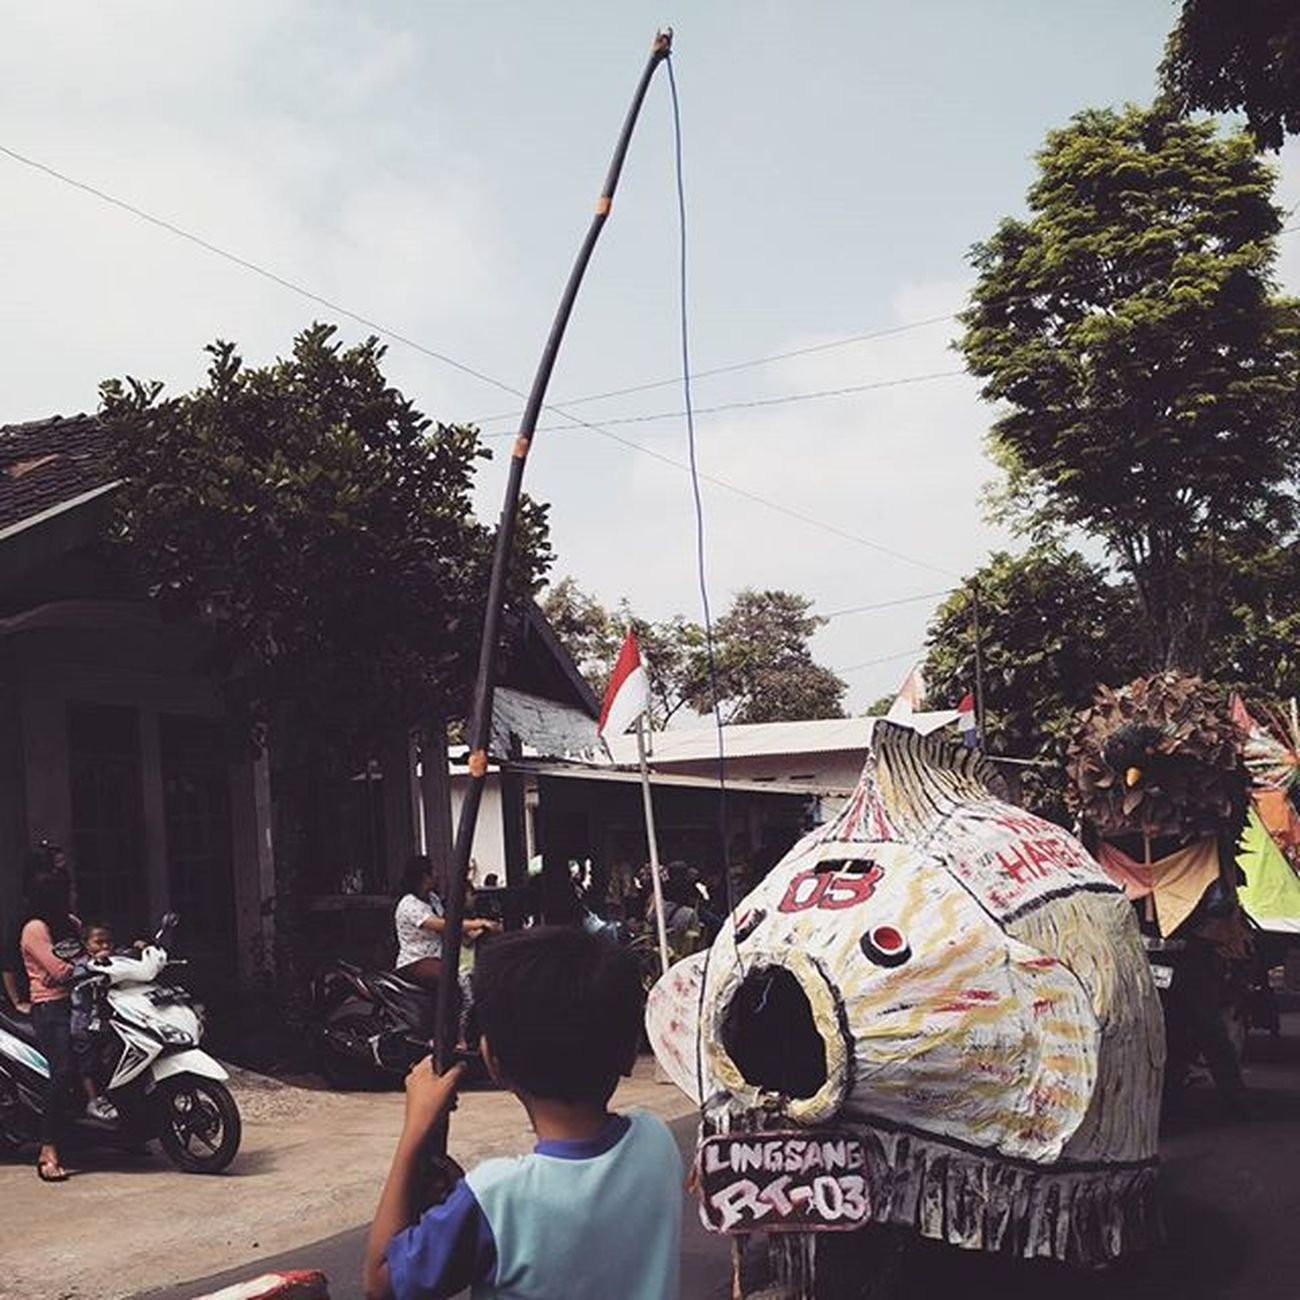 I want fishing ( mancing lingsang ) Just a moment in carnival 🙋🎋🐟 Resnapshoot Instapic Instamoment Instacarnival Instaparade Instalike Instagood Carnival Traditionalcarnival Culture Moment Like4like Likeforlike Latepost Kranggan Temanggung Java INDONESIA